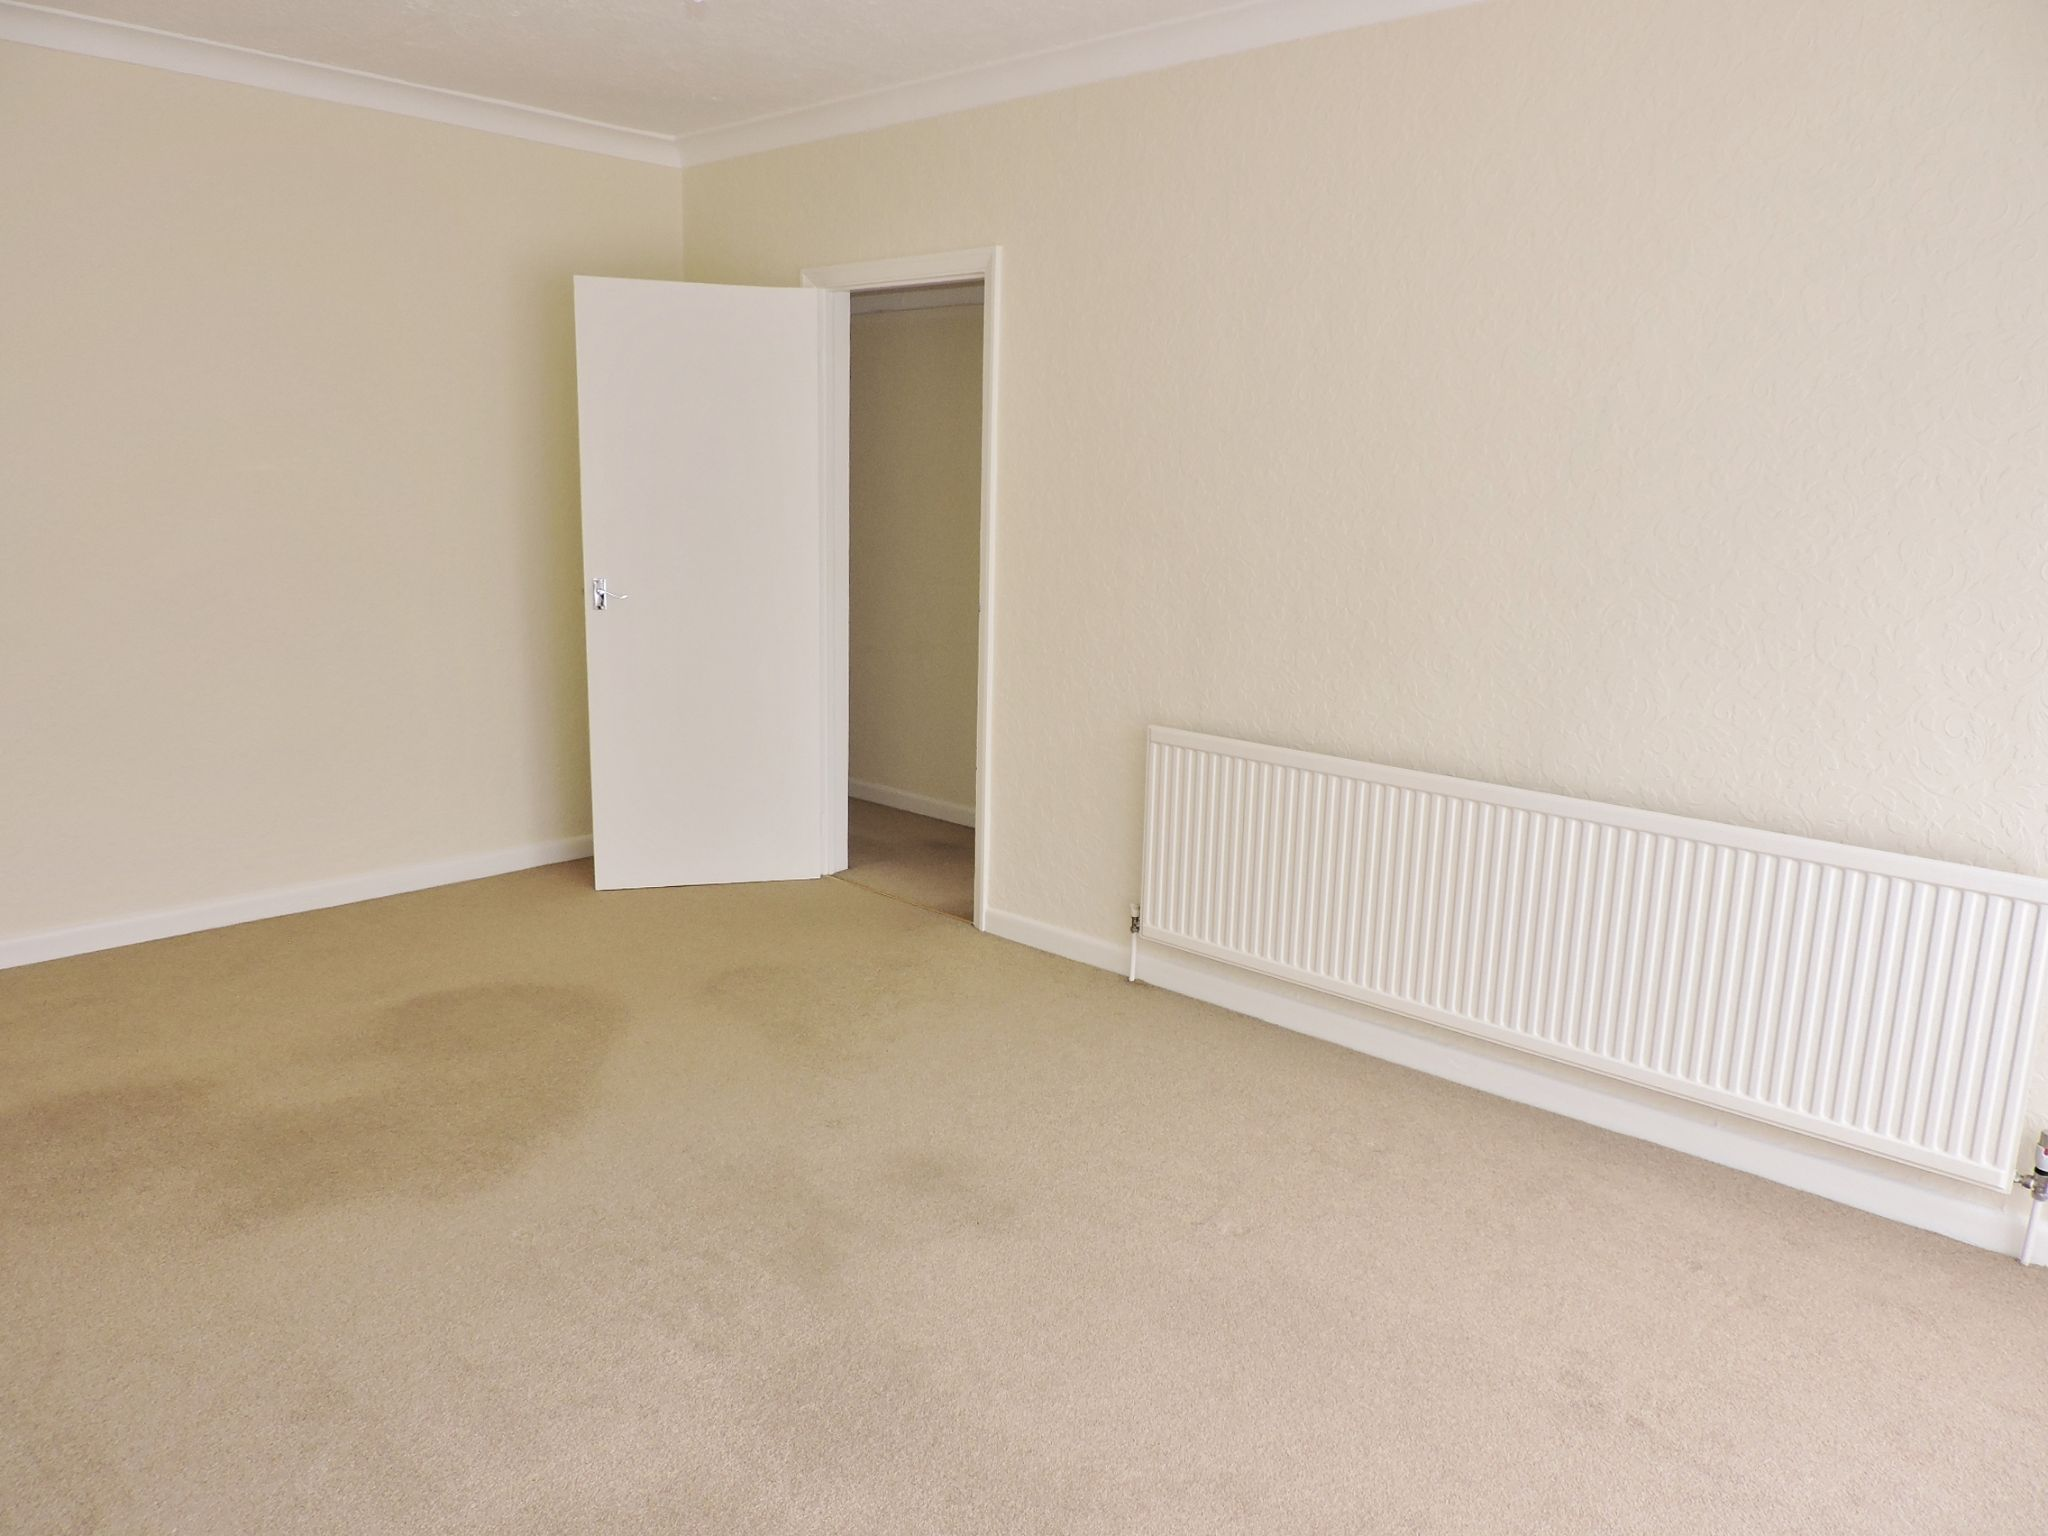 2 bedroom semi-detached bungalow Let in Epsom - Photograph 4